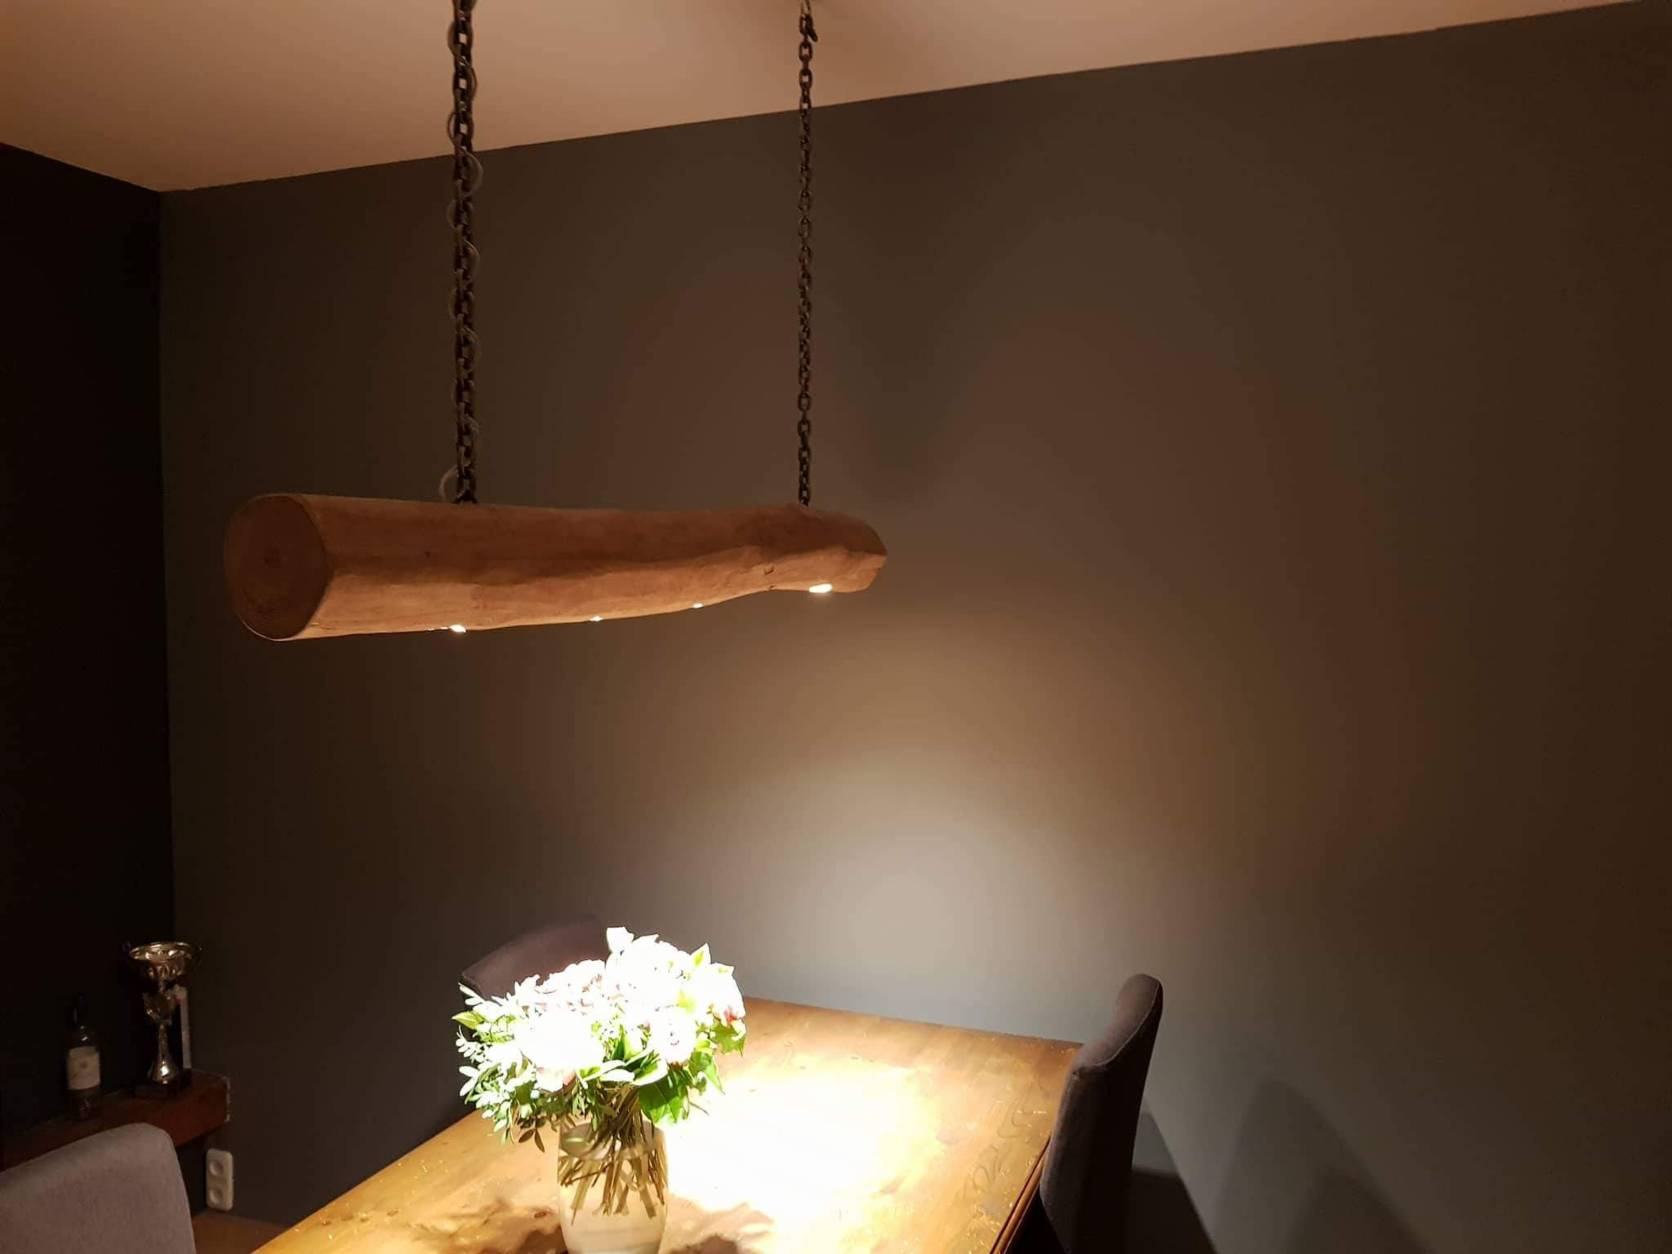 Boomstam hanglamp